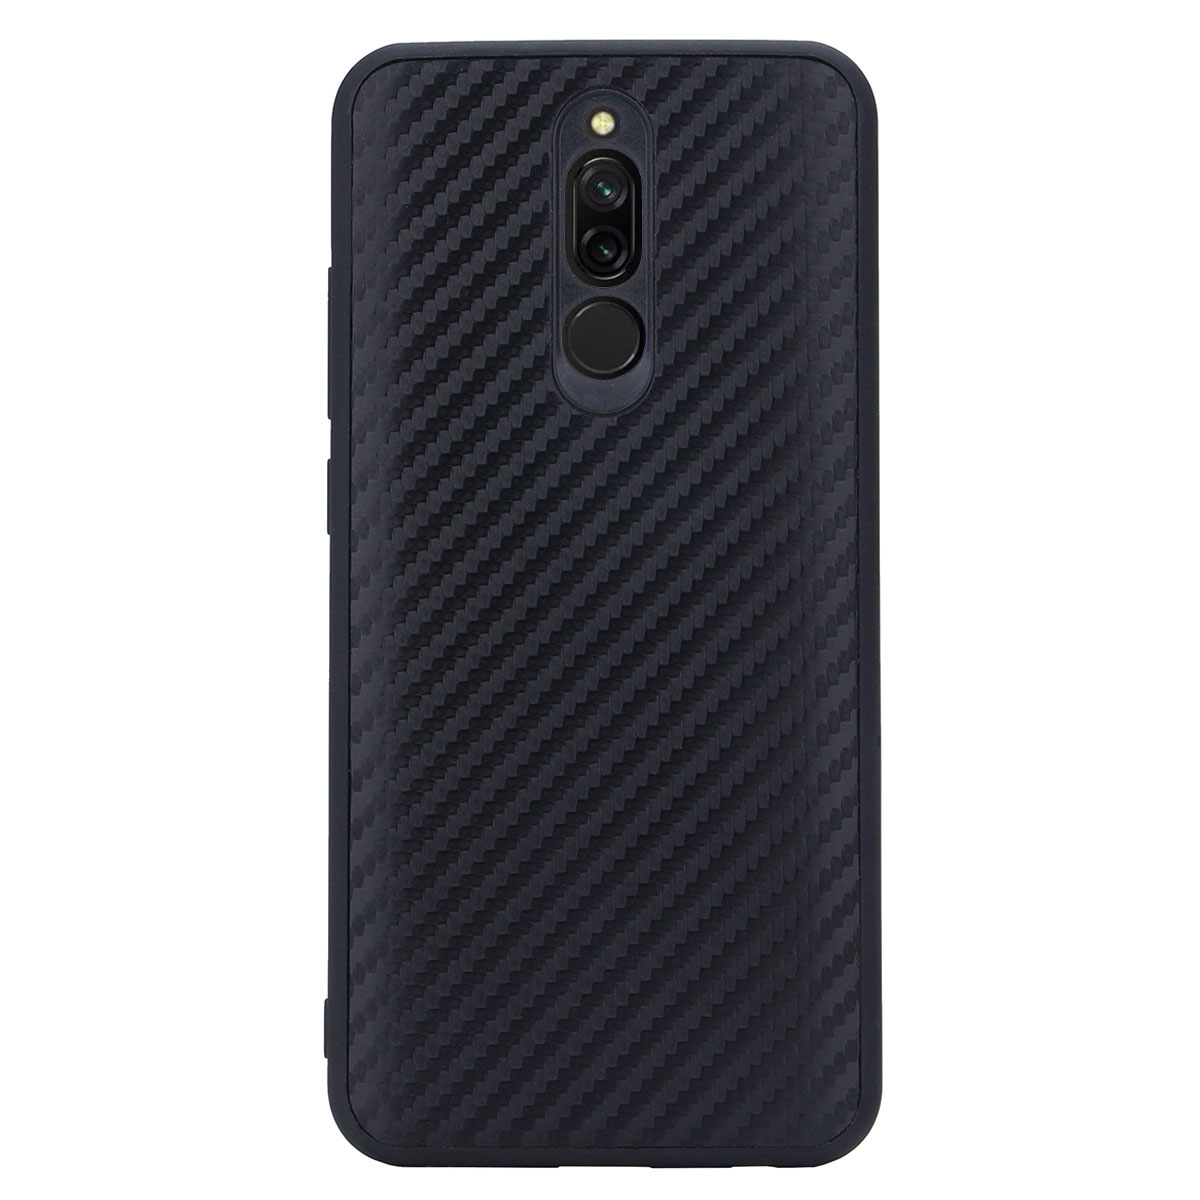 Чехол G-Case для Xiaomi Redmi 8 Carbon Black GG-1176